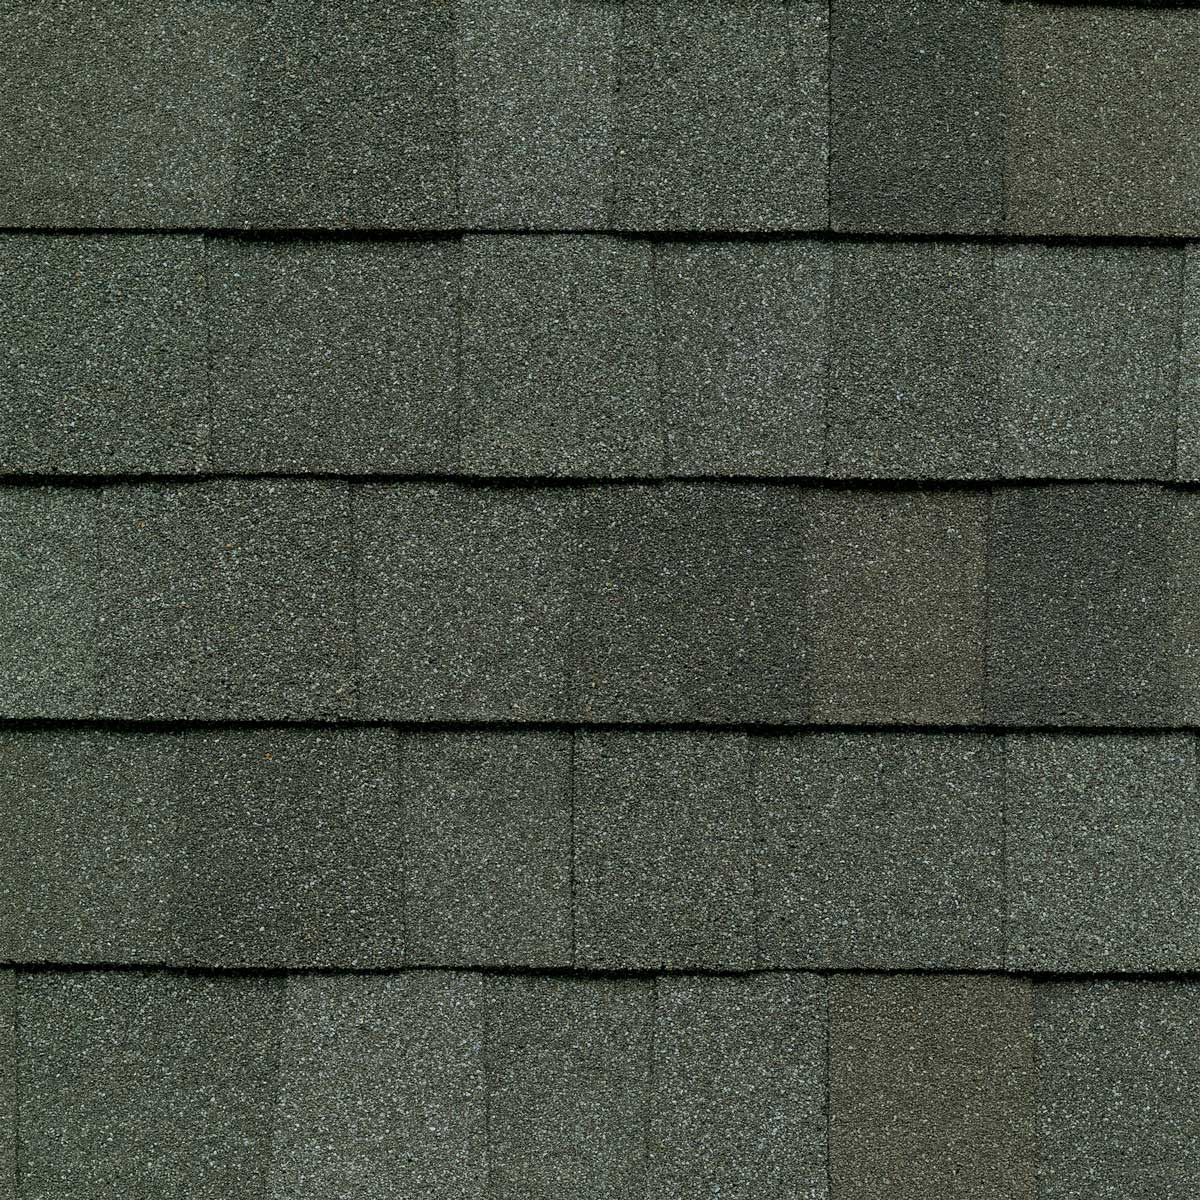 Gaf timberline american harvest shingles ed senez for Nantucket shingles